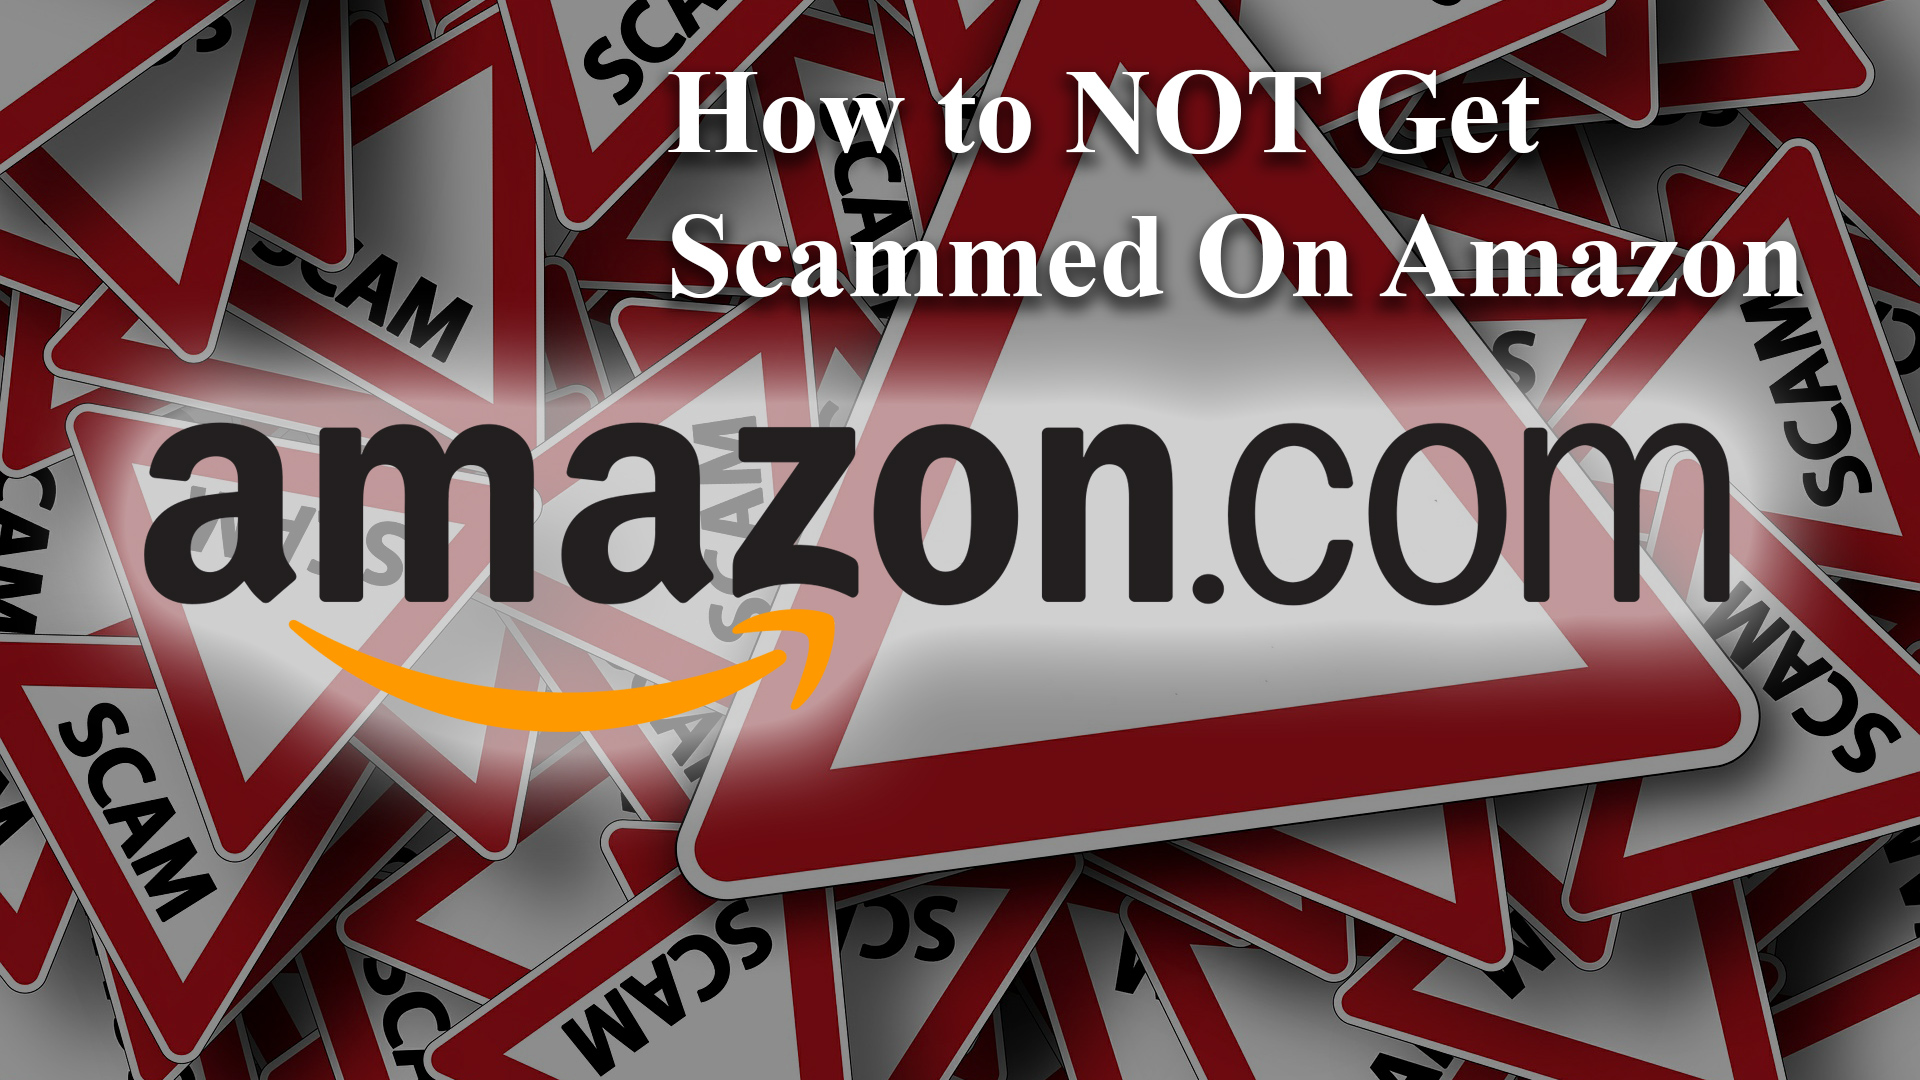 How to Not Get Scammed on Amazon